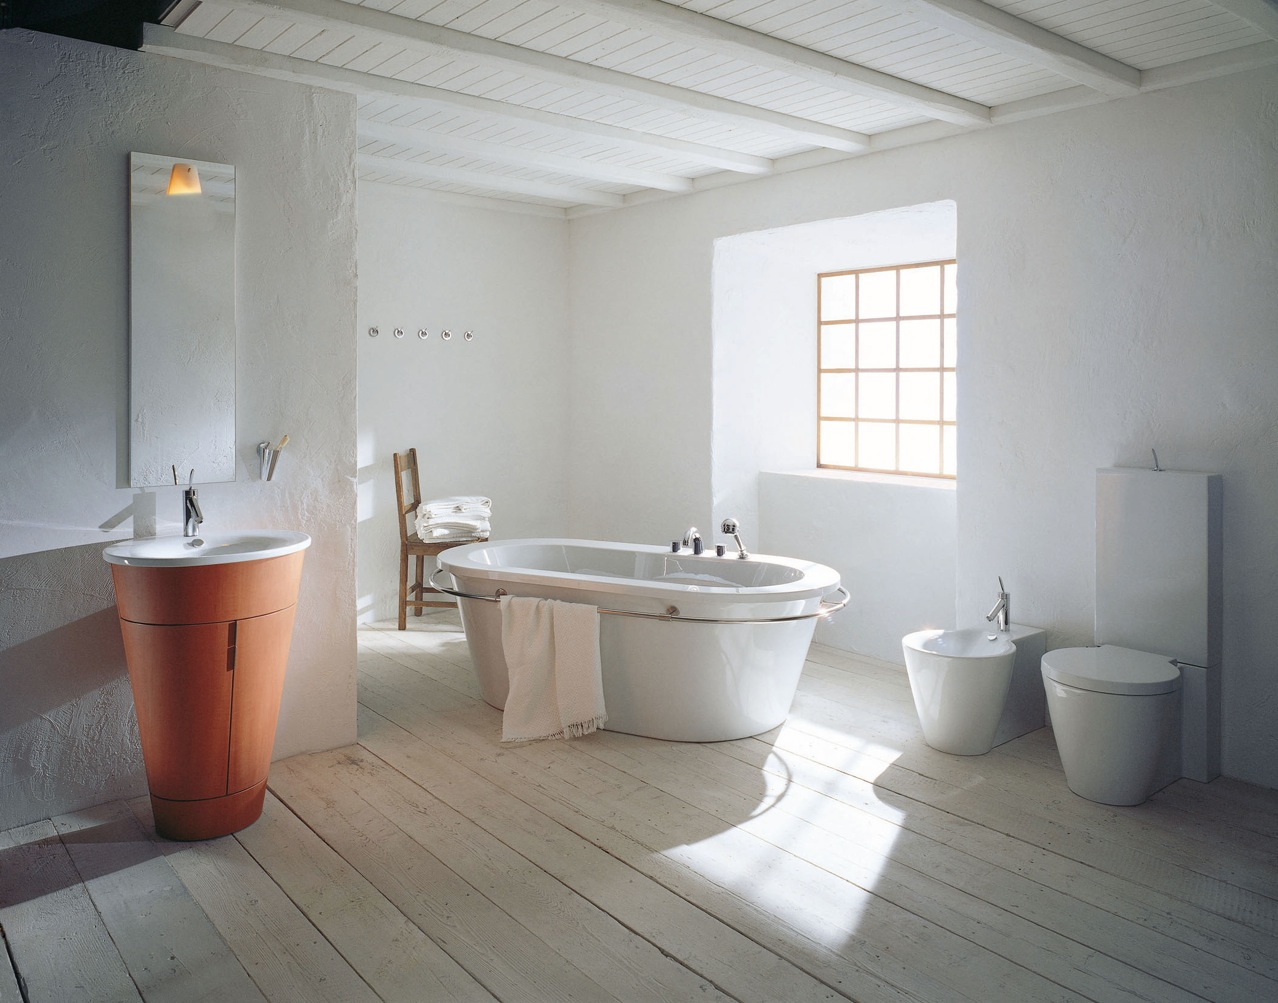 Philipe starck rustic modern bathroom decor for Pictures of contemporary bathrooms